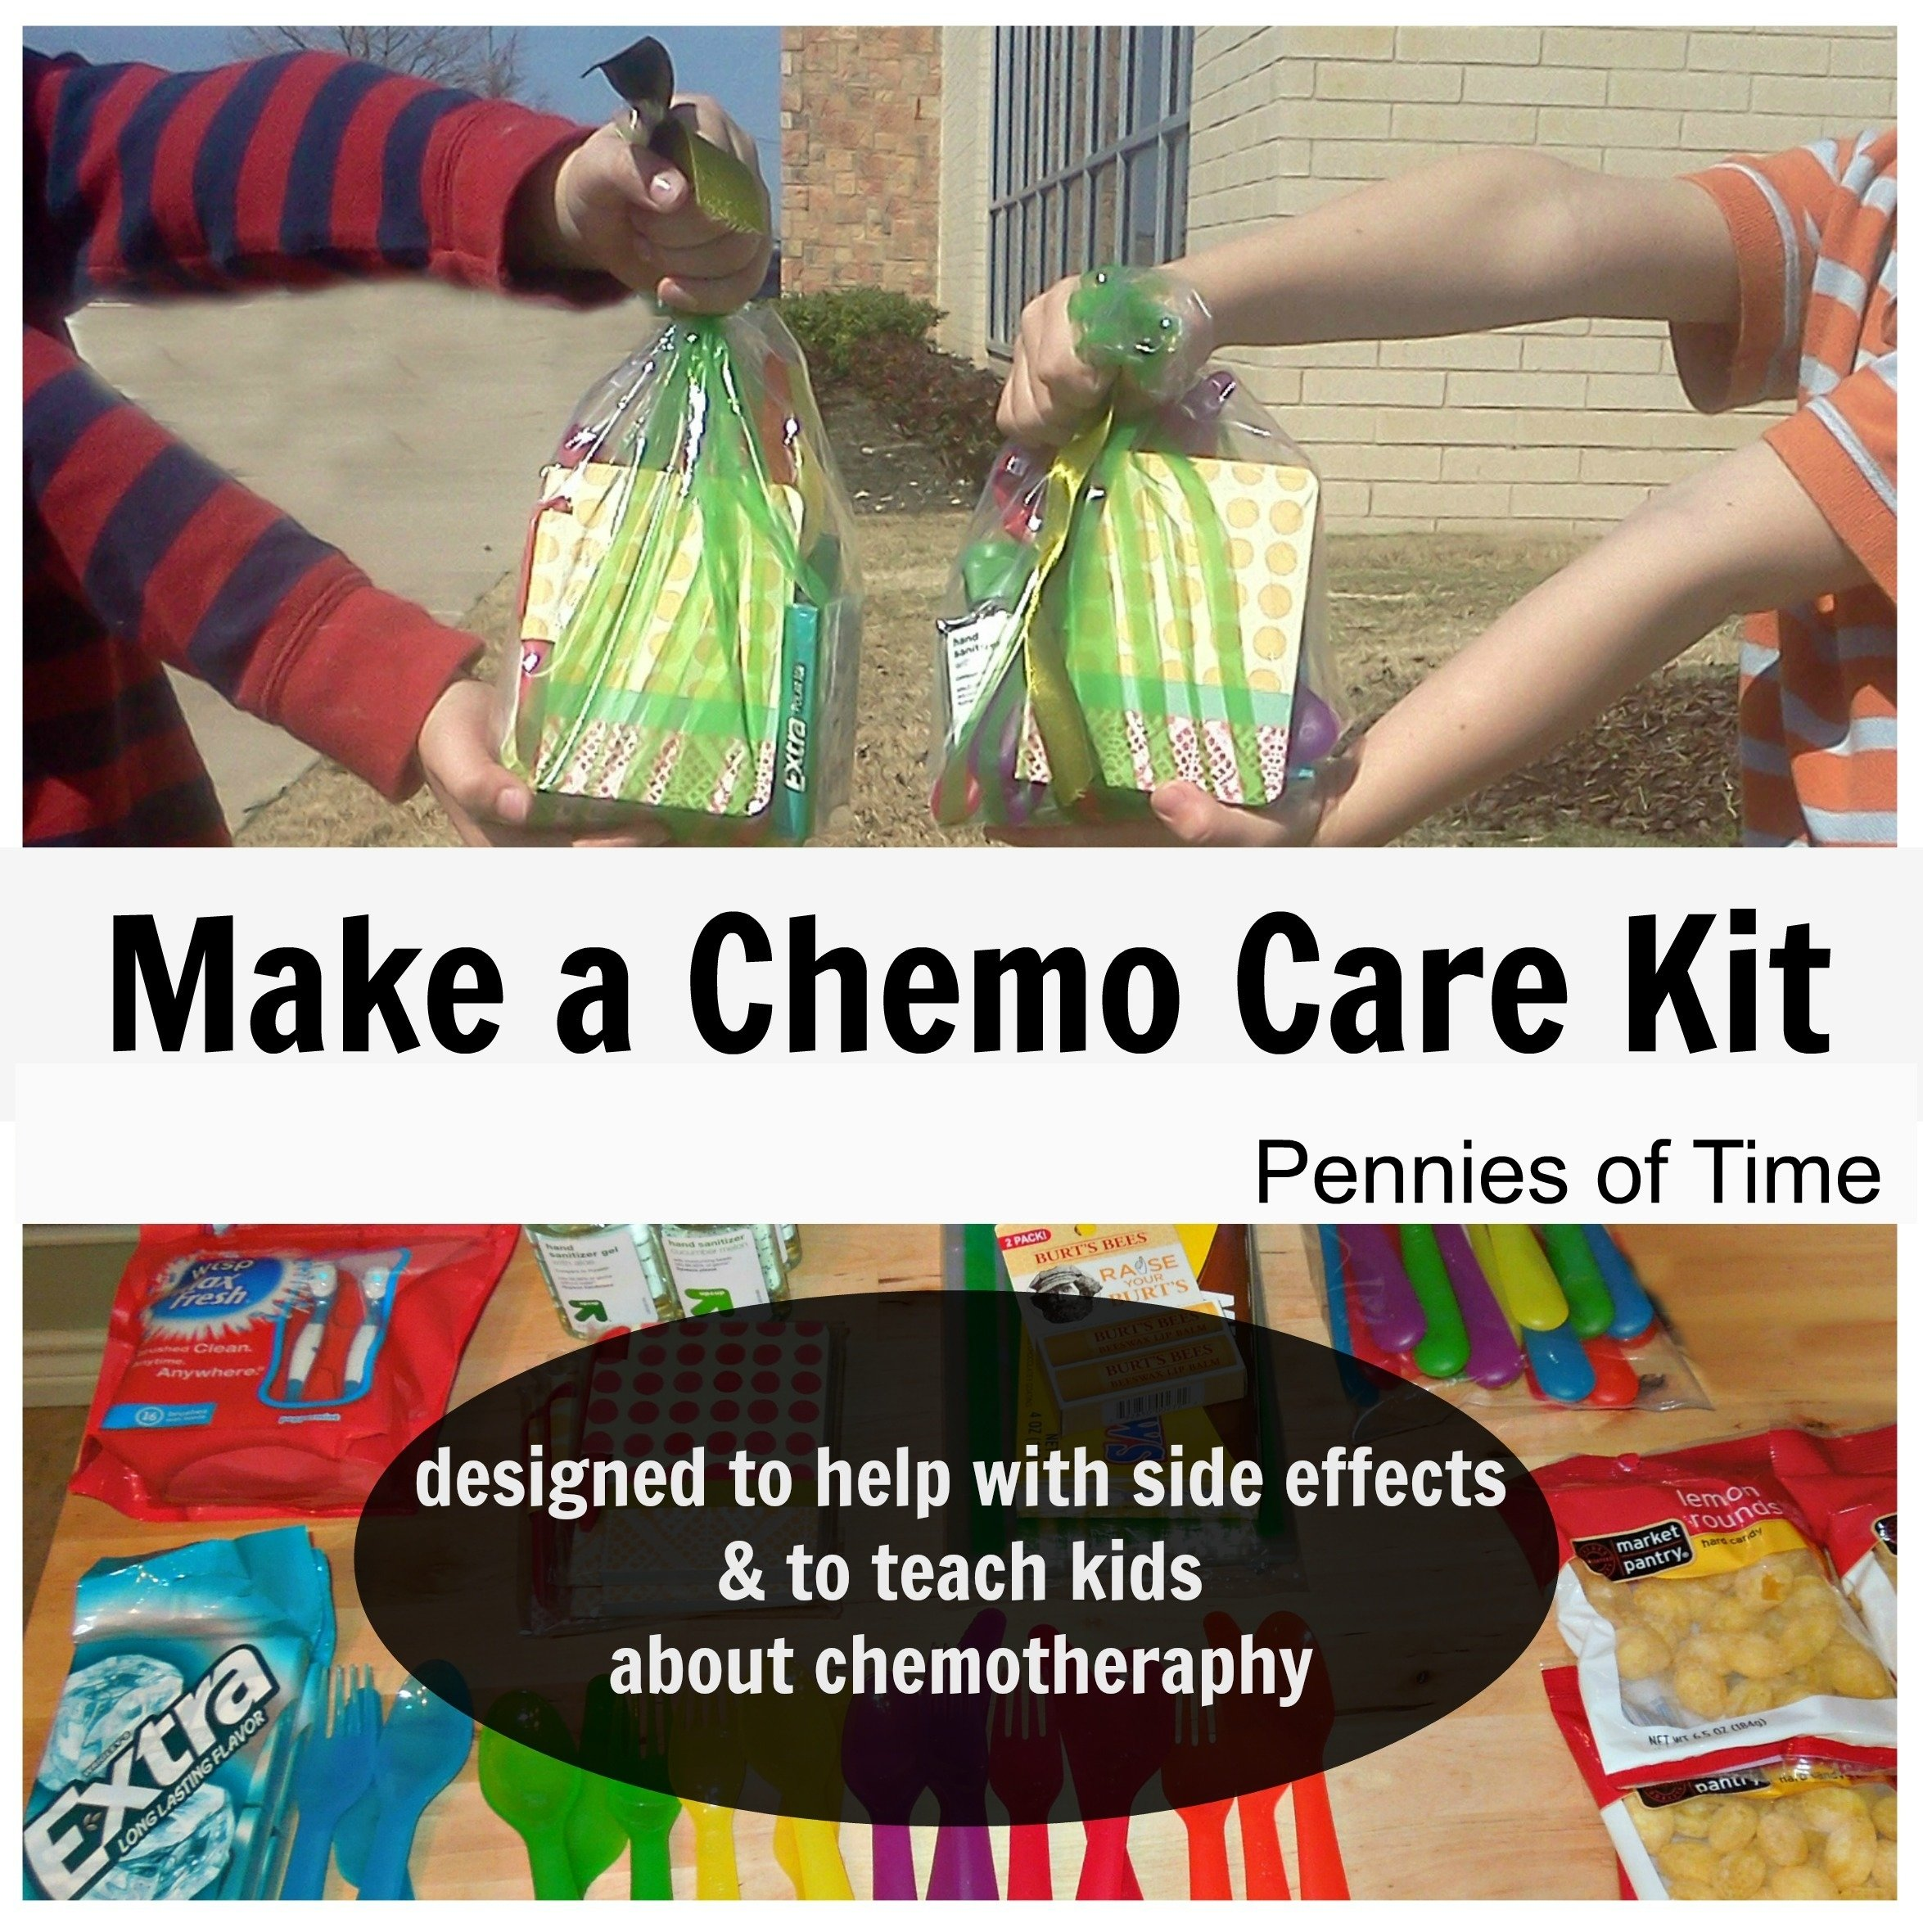 10 Lovable Care Package Ideas For Cancer Patients service project for kids chemo care kit for kids pennies of time